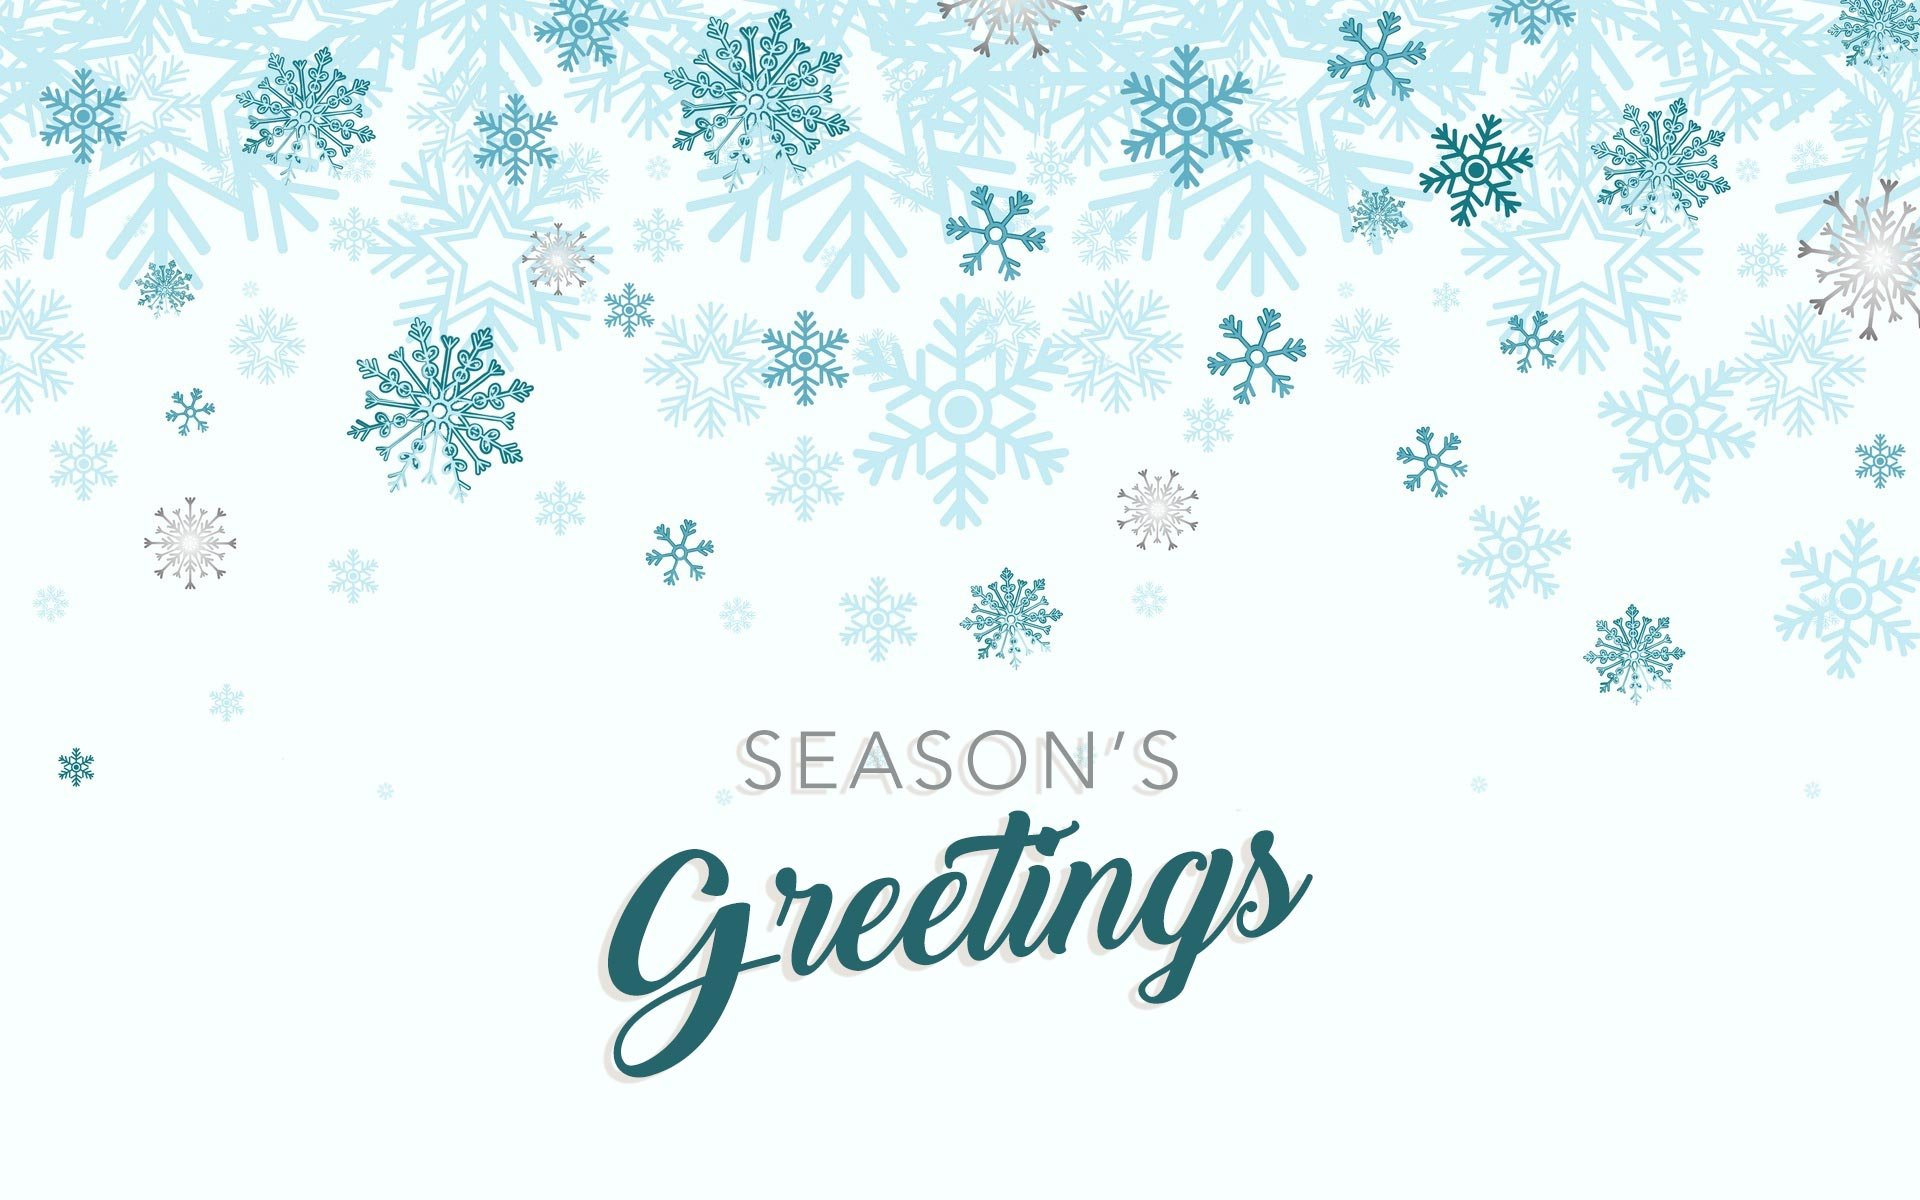 15 Seasons Greetings Cards Stock Images HD Wallpapers Winter 1920x1200